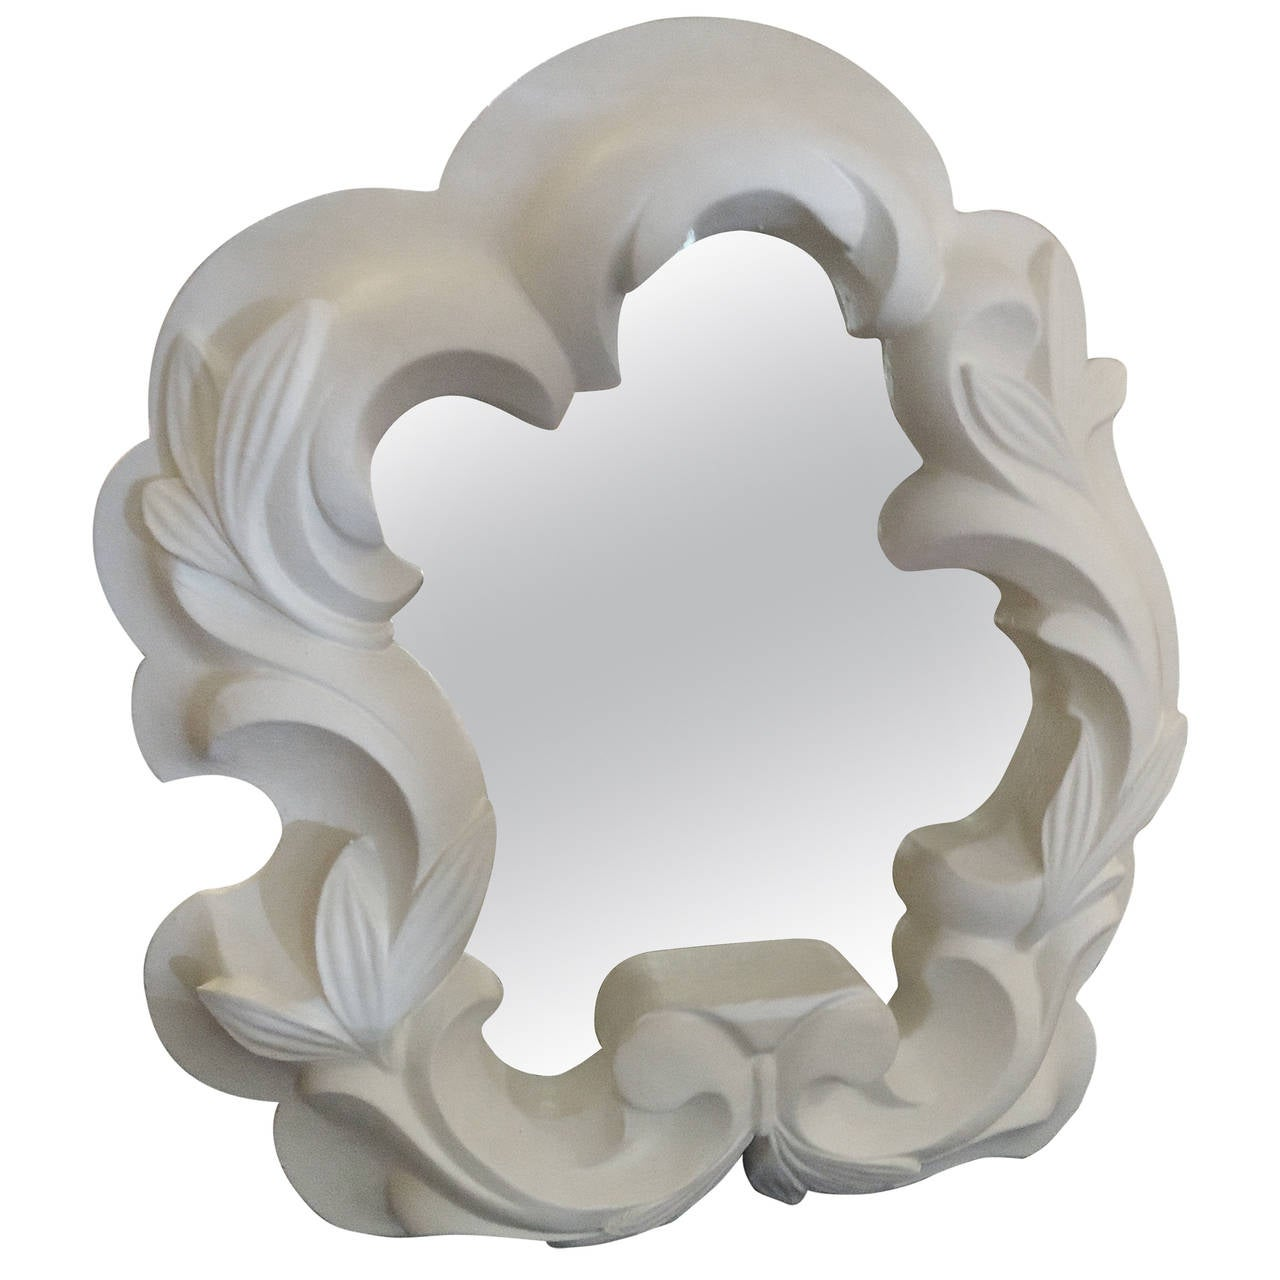 1940s Molded Plaster Asymmetrical Shaped Mirror